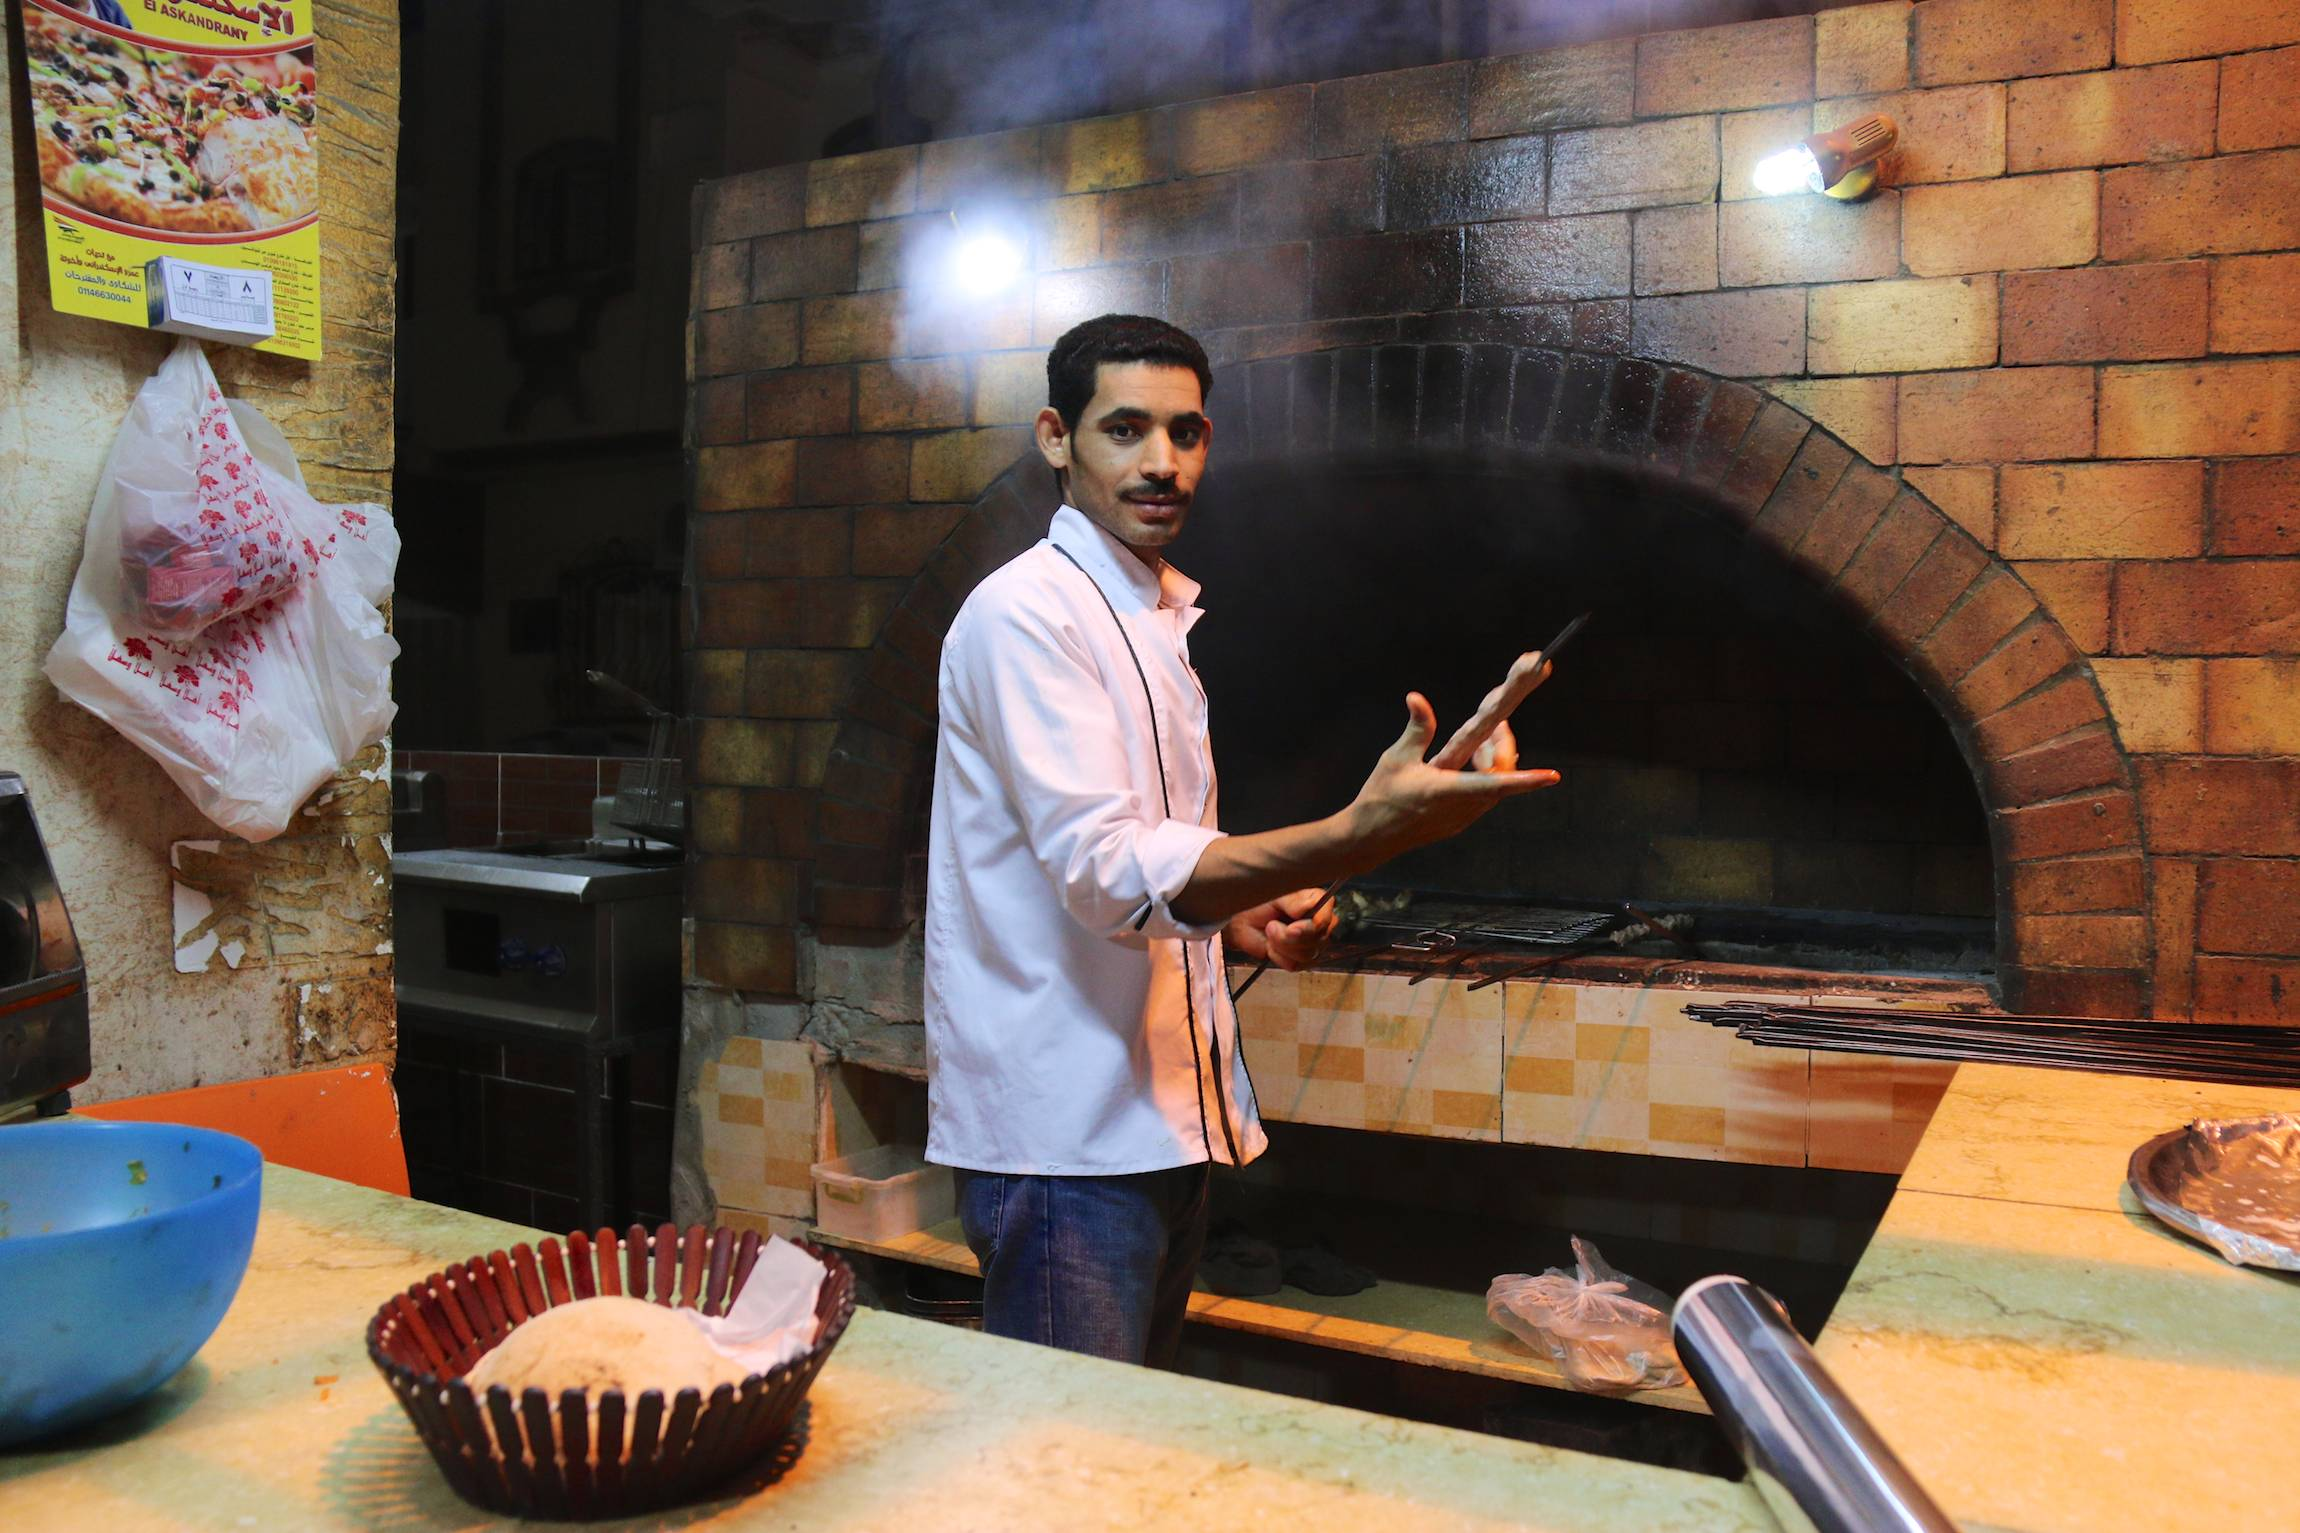 An Egyptian cook poses for a portrait as he prepares dinner for guests in El Quseir, Egypt, Jan. 8, 2014.